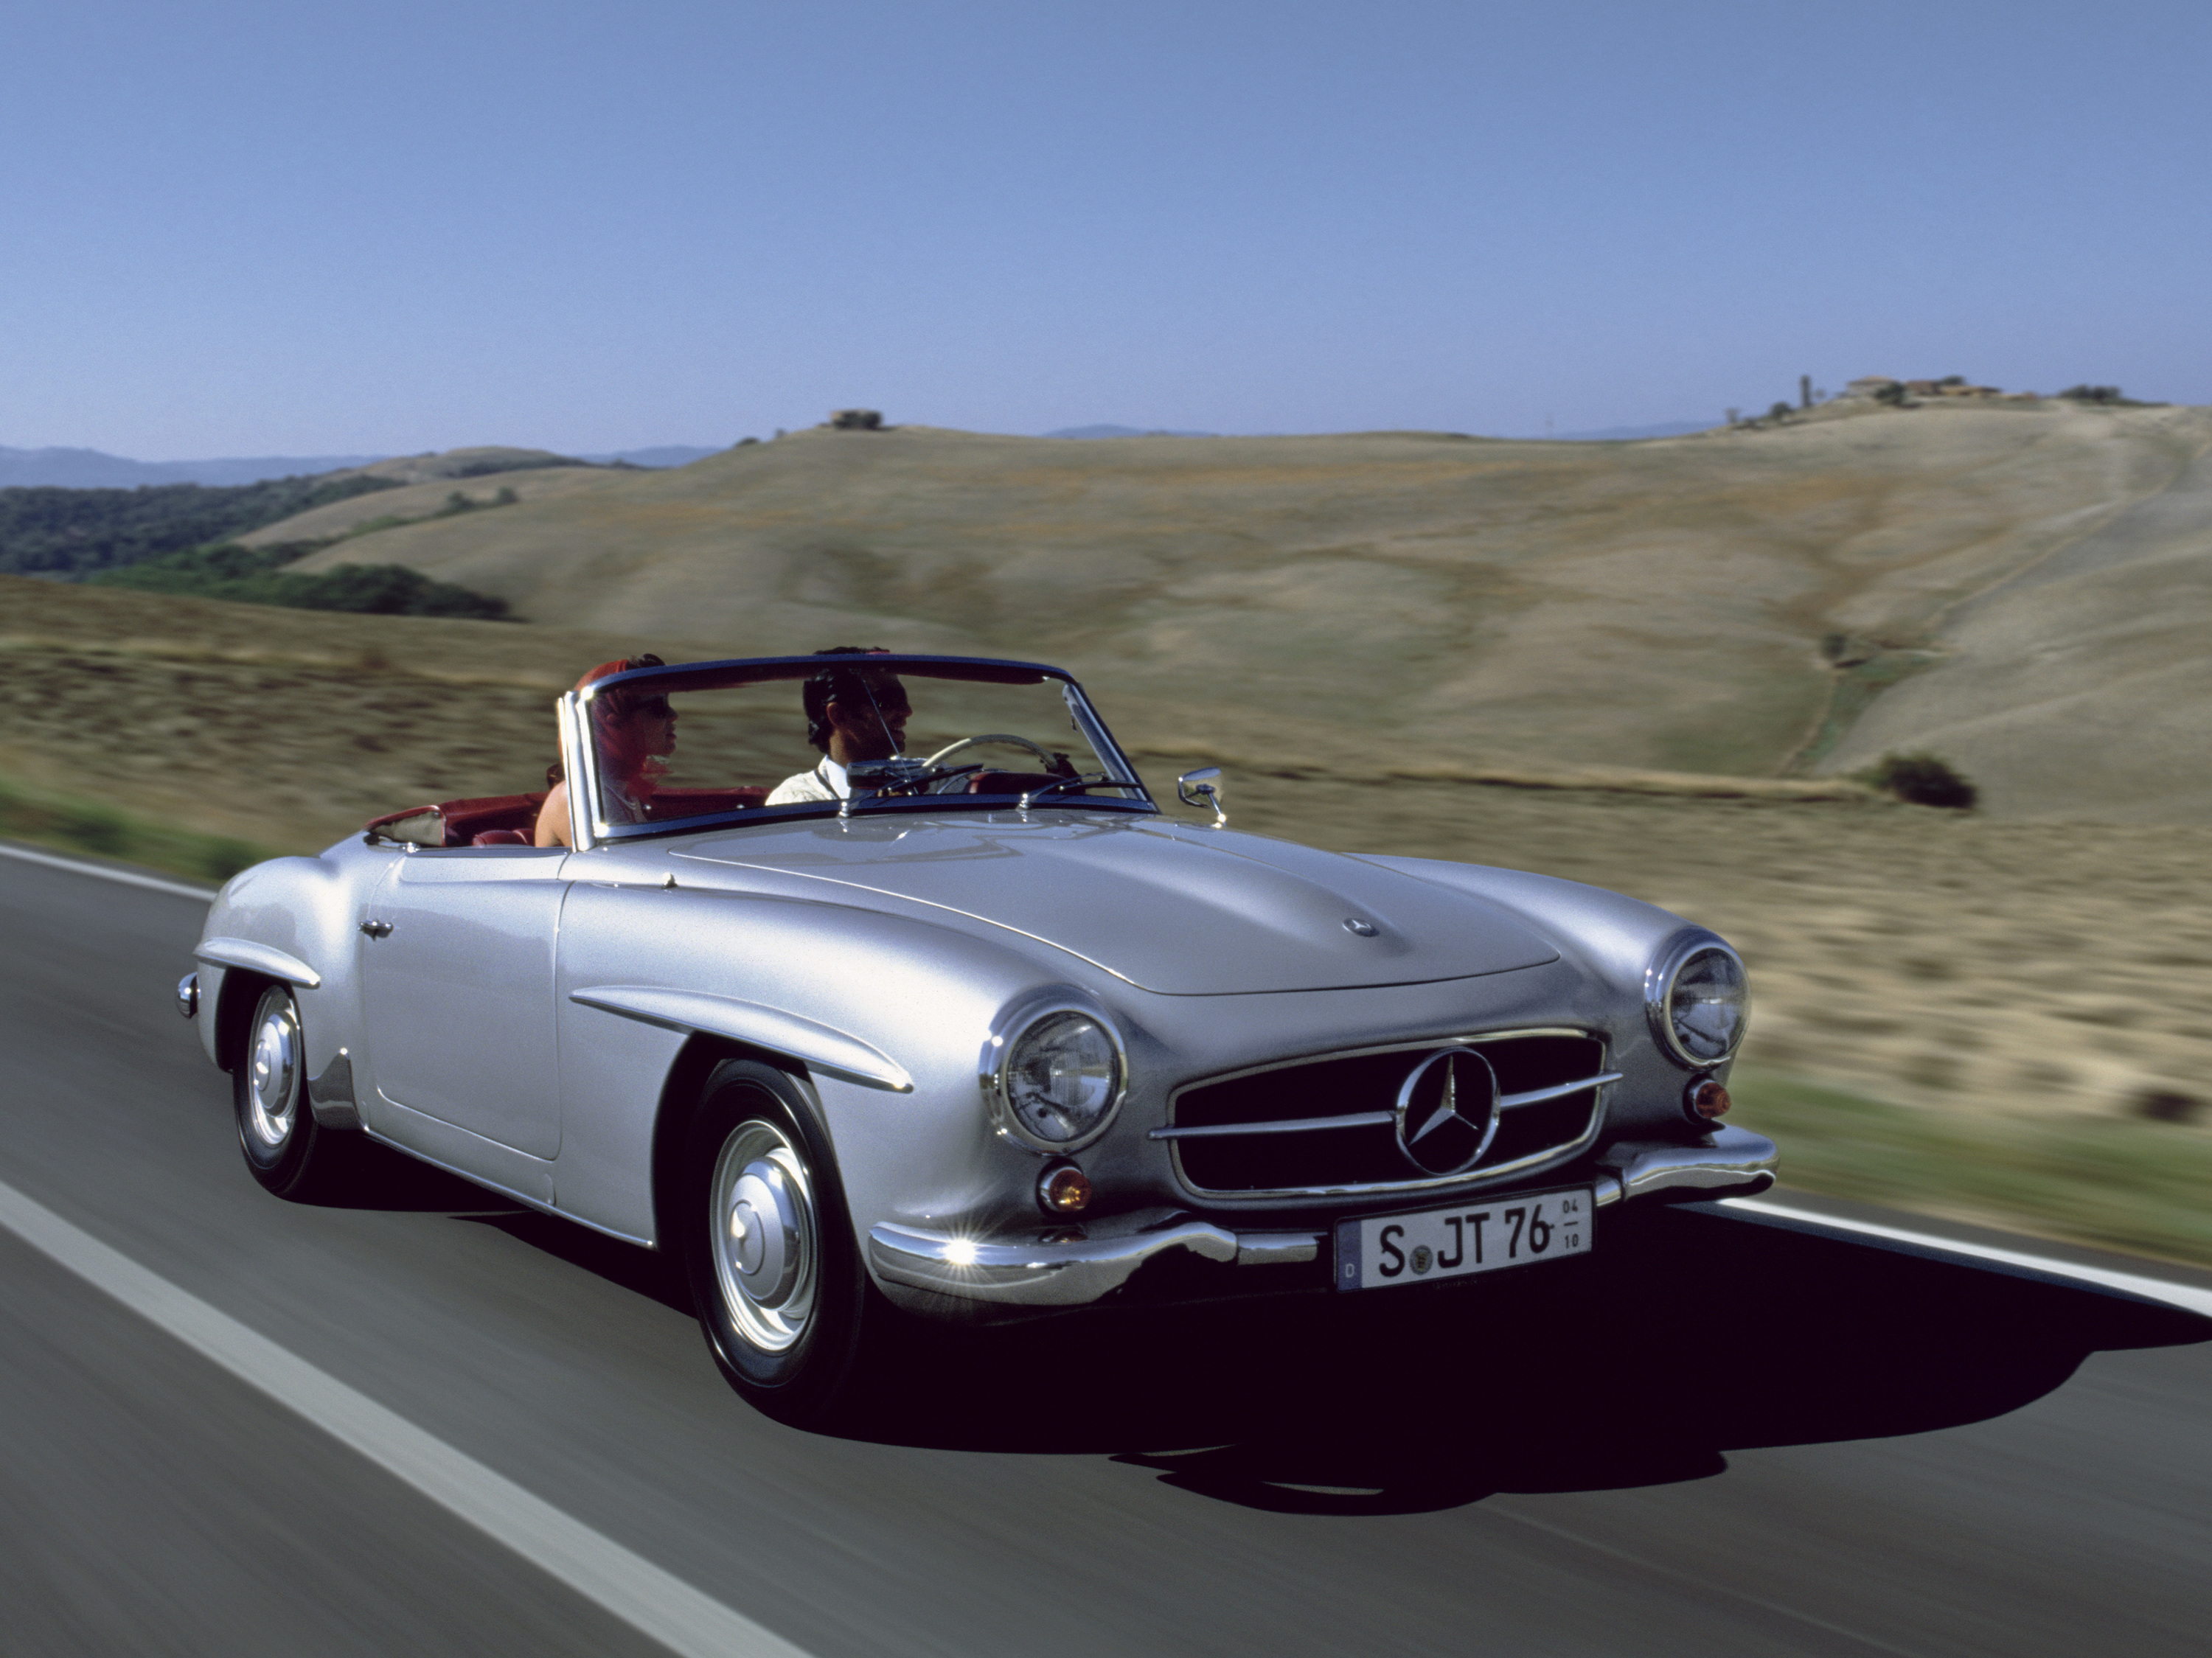 Enjoy stars and cars at Mercedes me